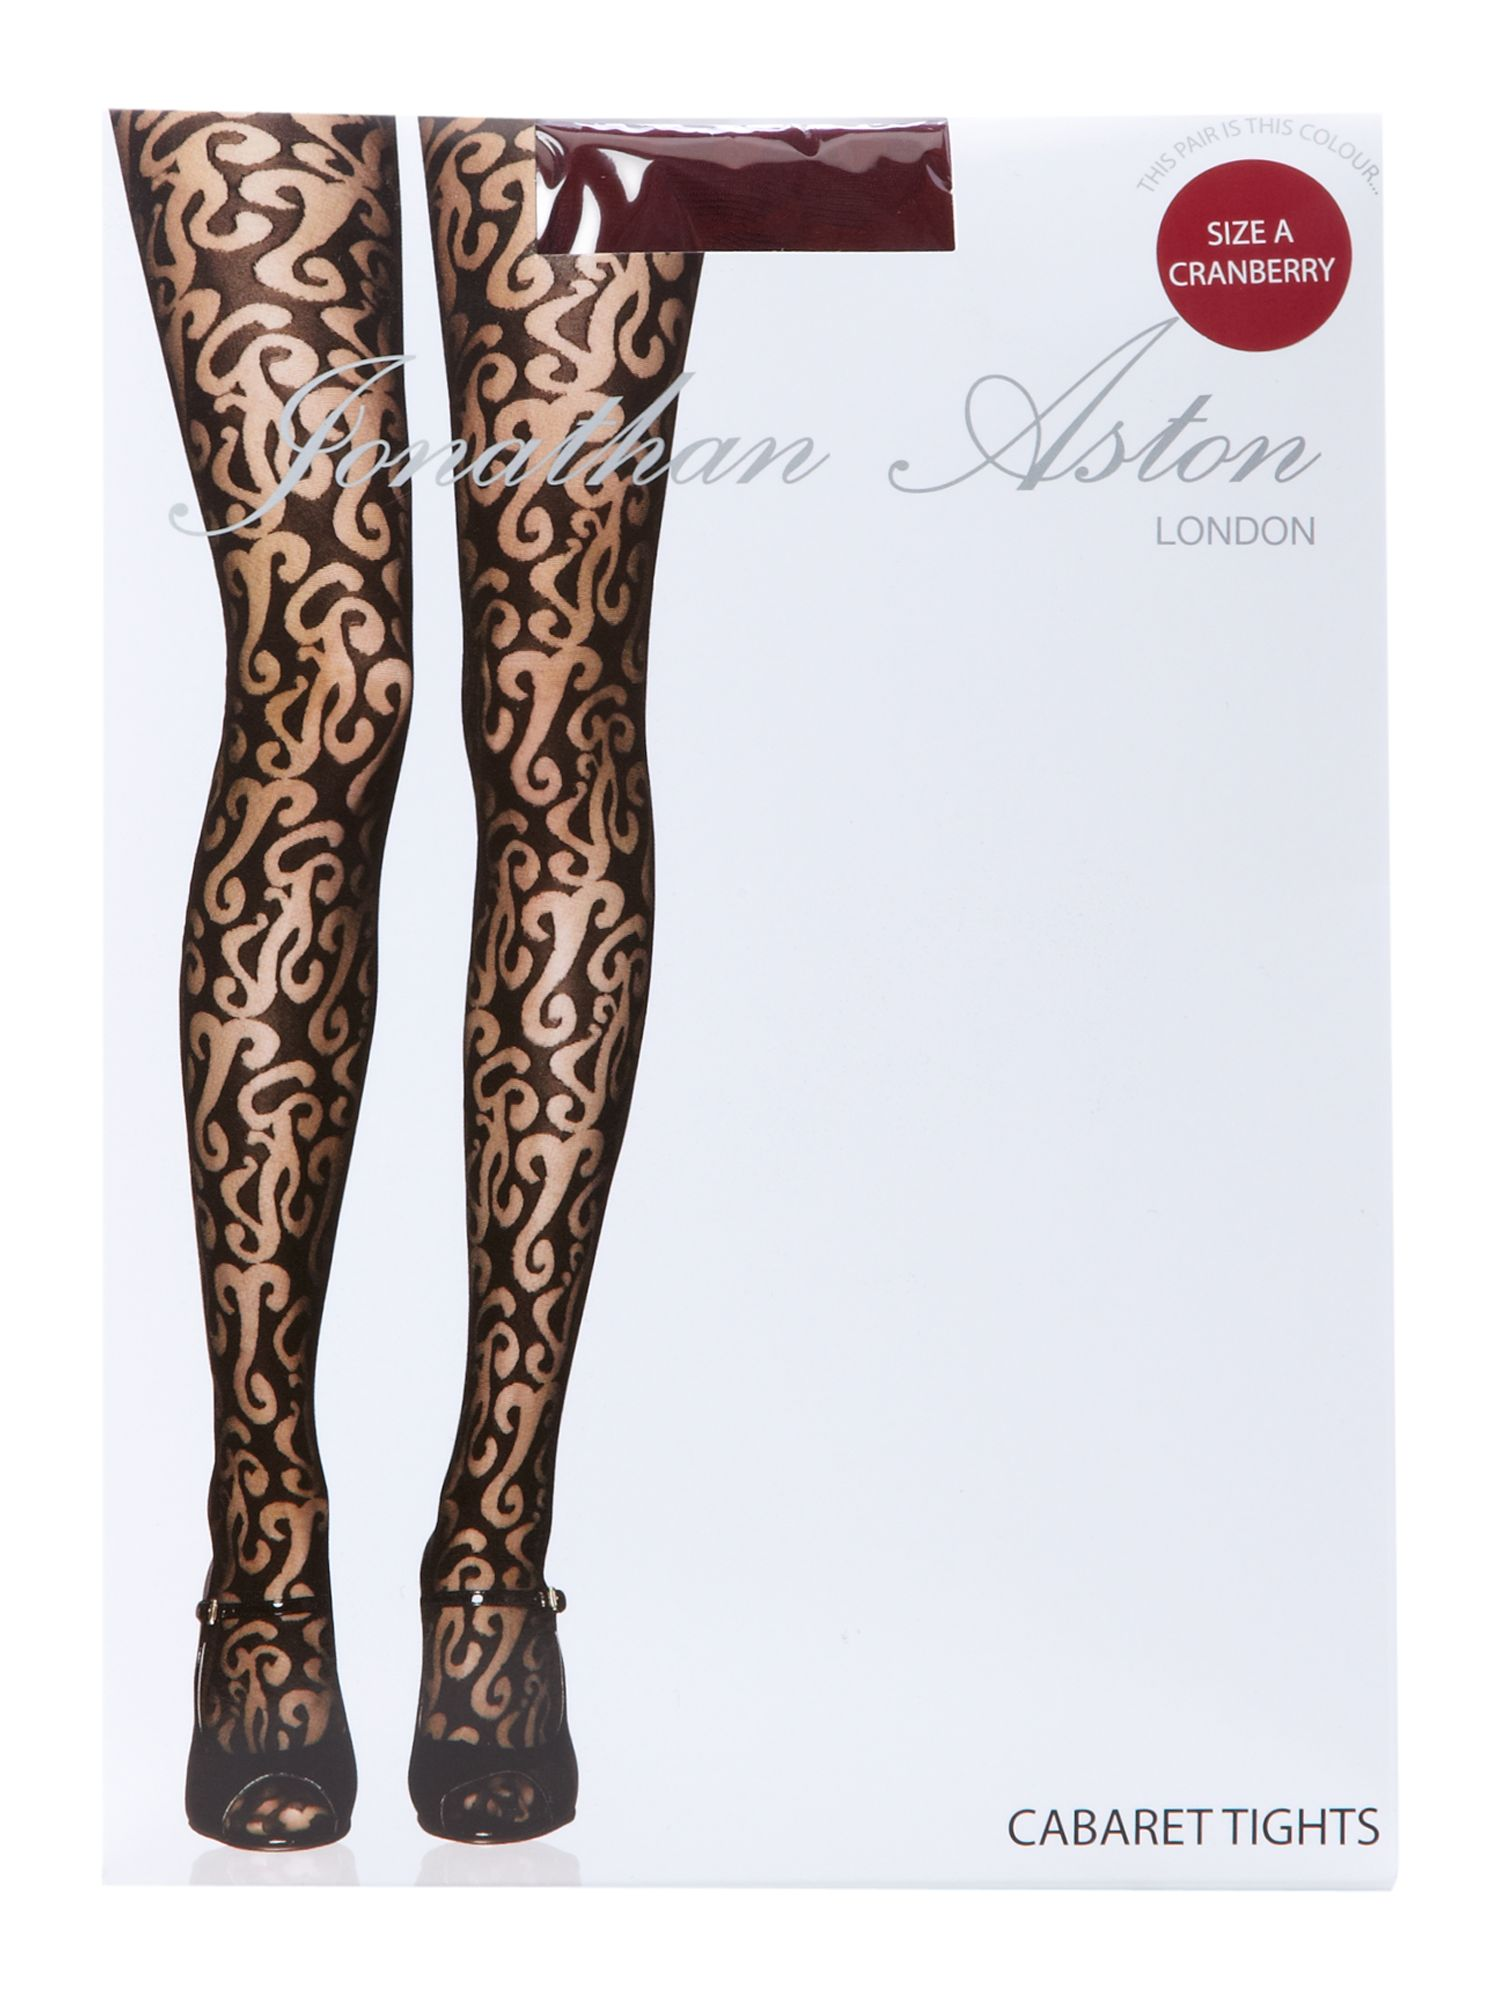 Caberet tights